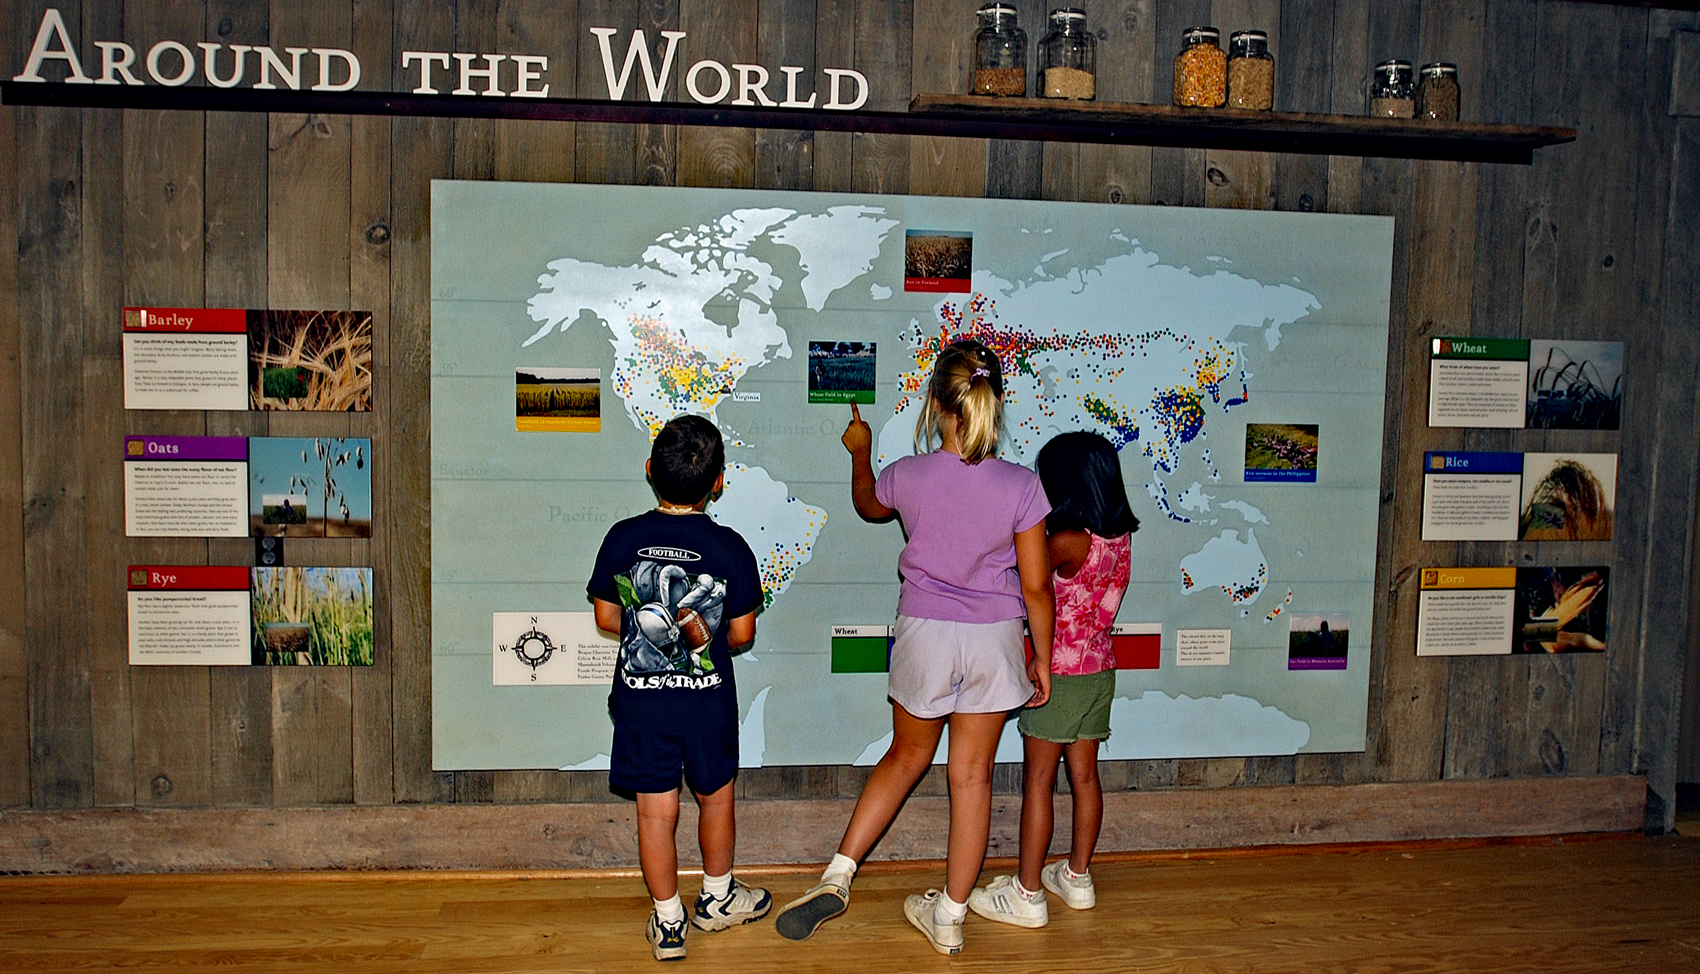 Children look at a map of where grains grow around the world